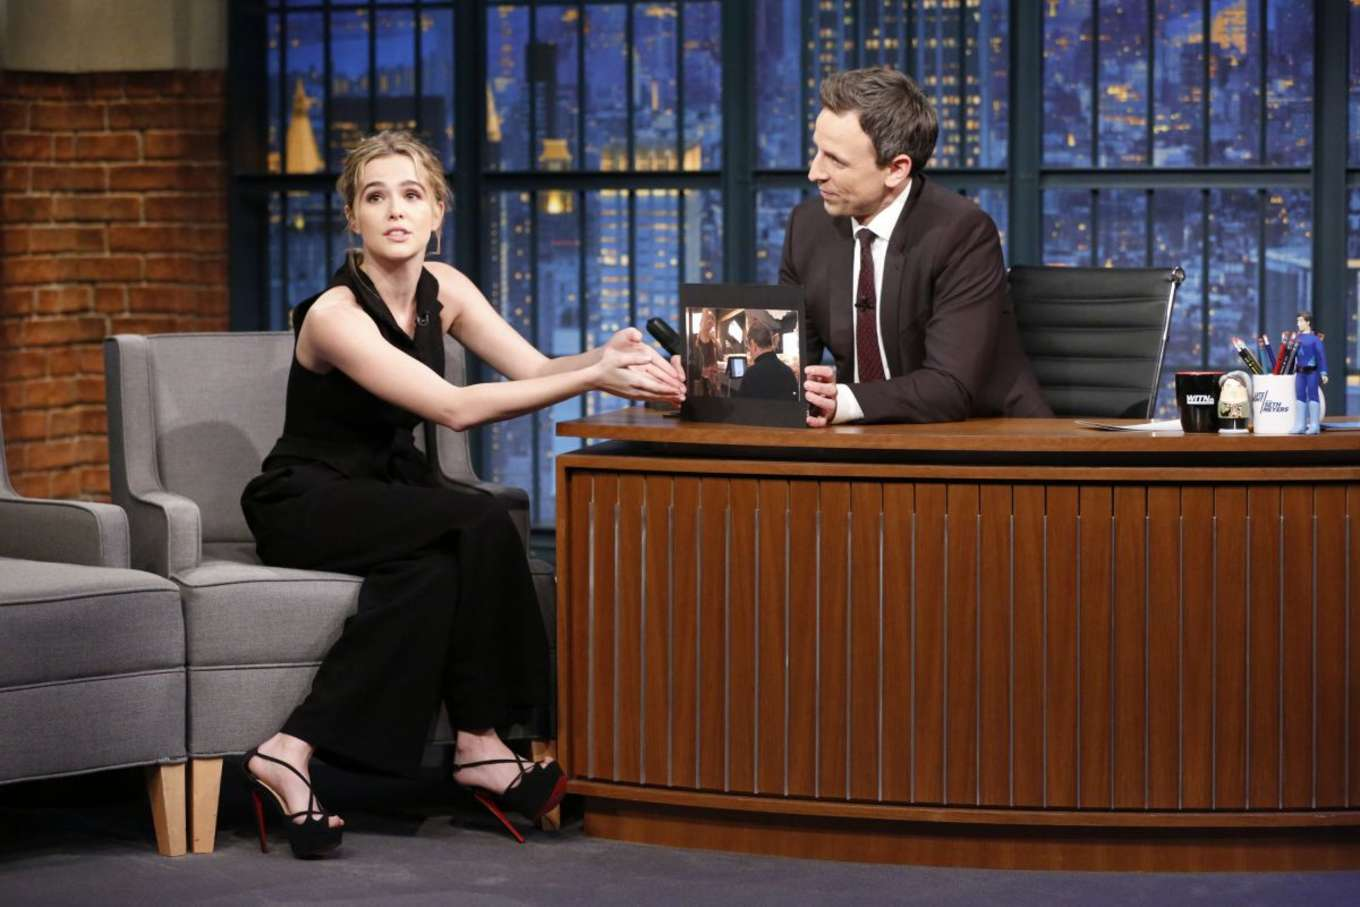 Zoey Deutch 2016 : Zoey Deutch on Late Night with Seth Meyers -02